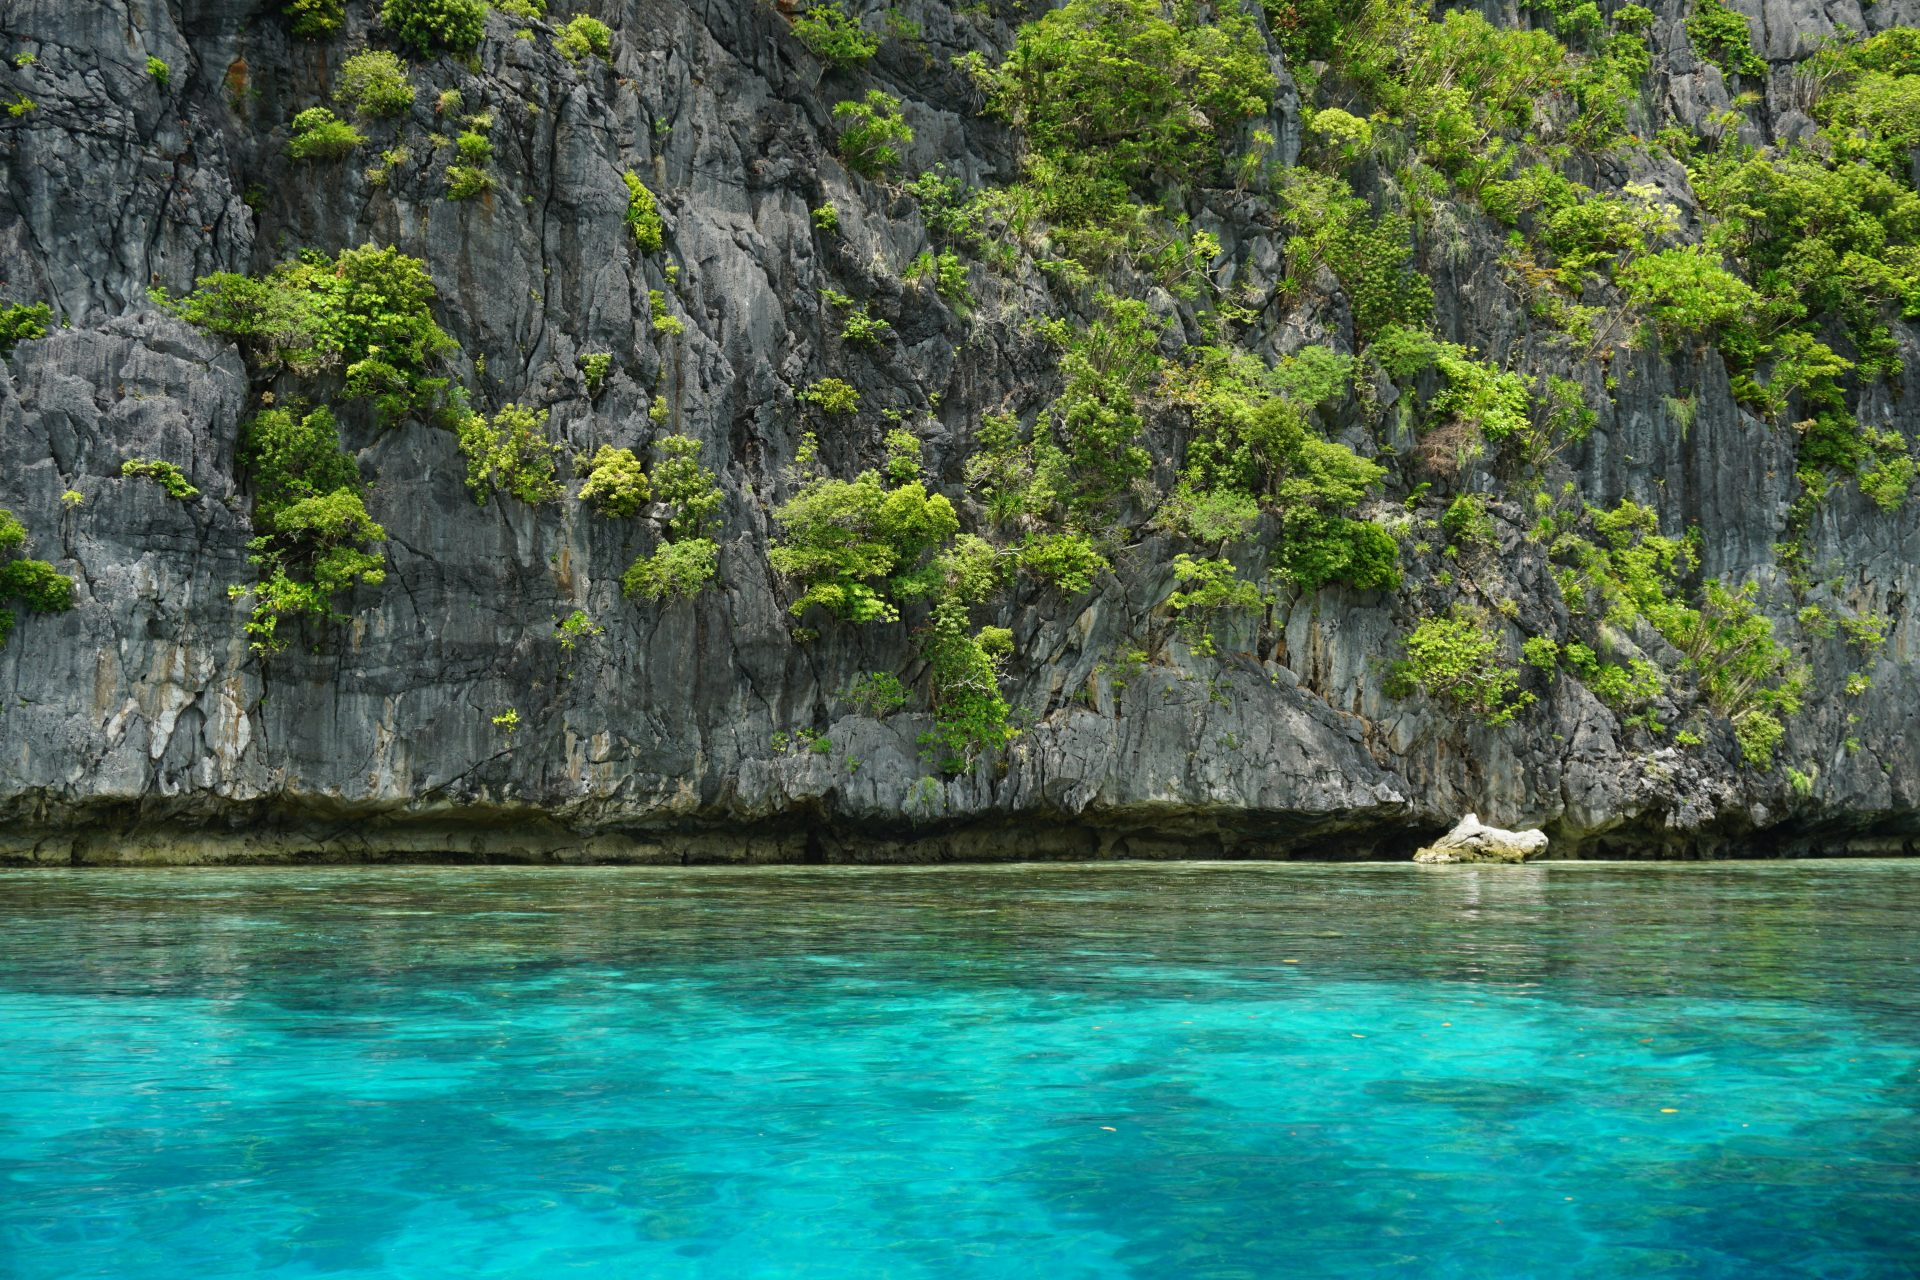 Vacation to the Philippines